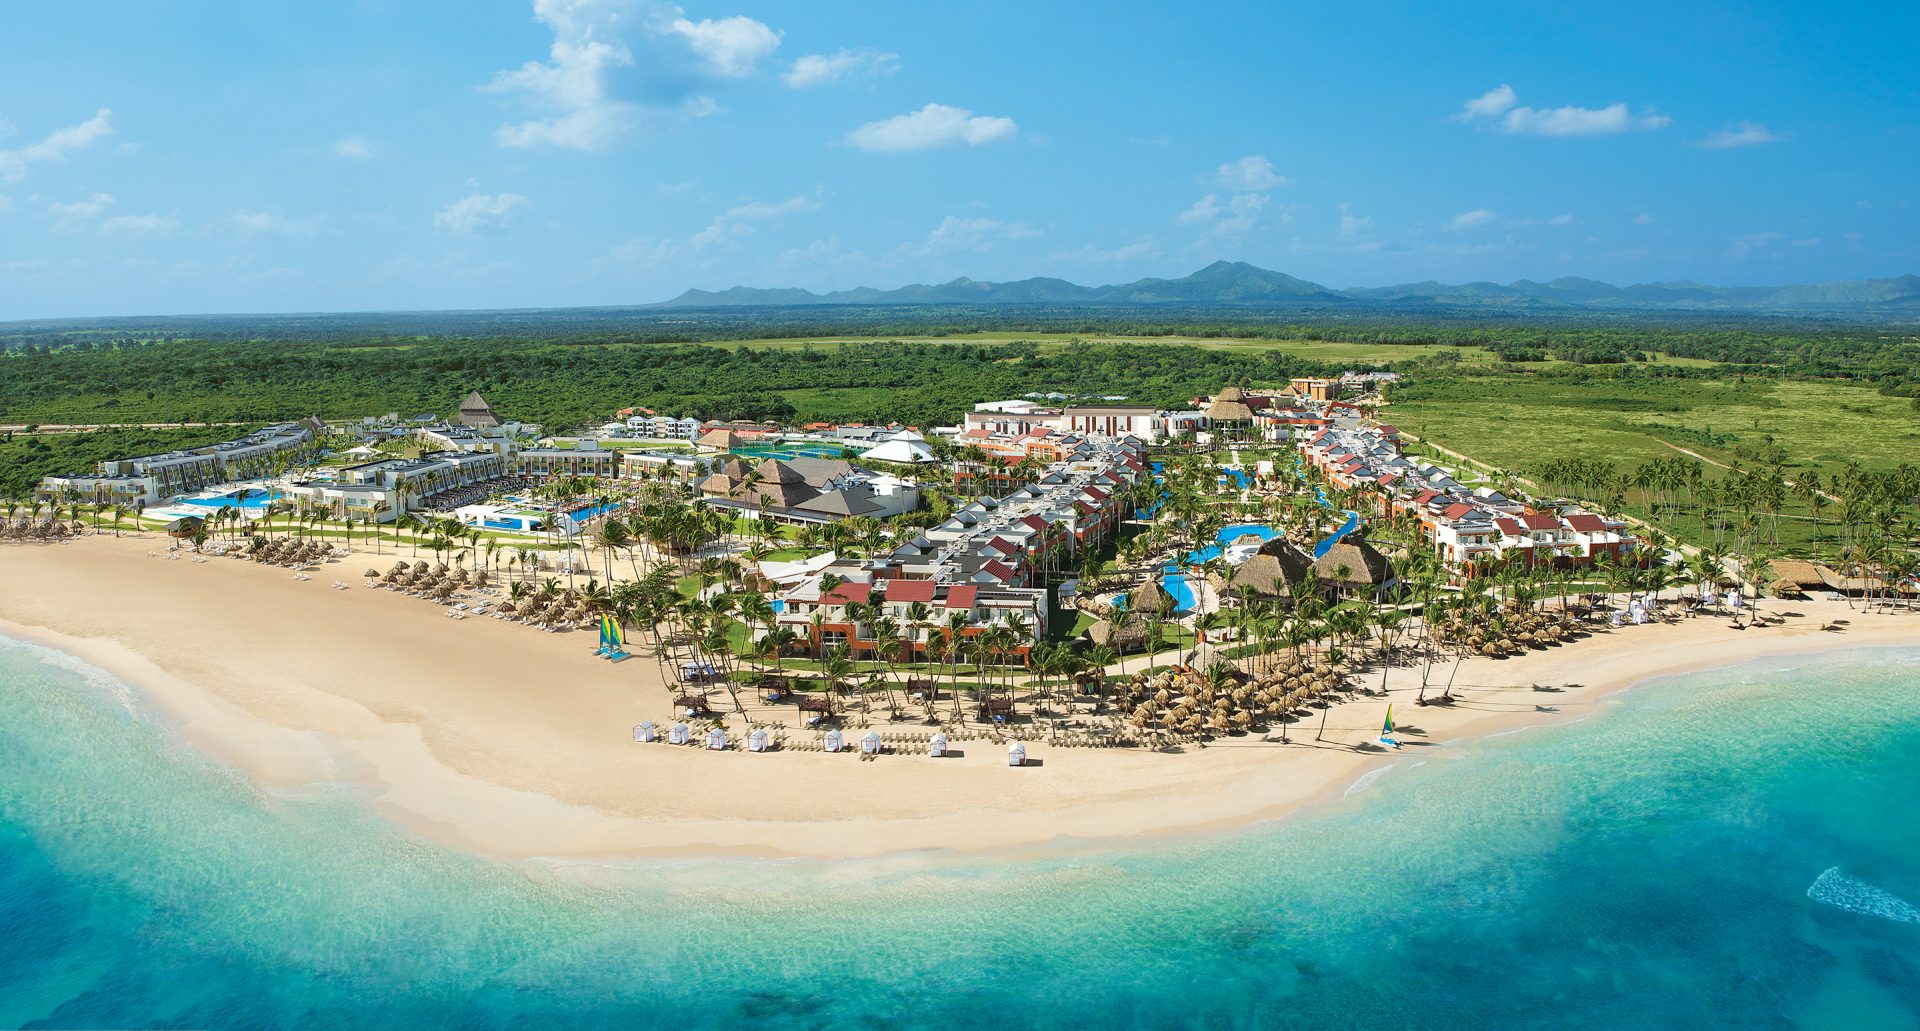 punta cana incentive travel pinned on micebook boards